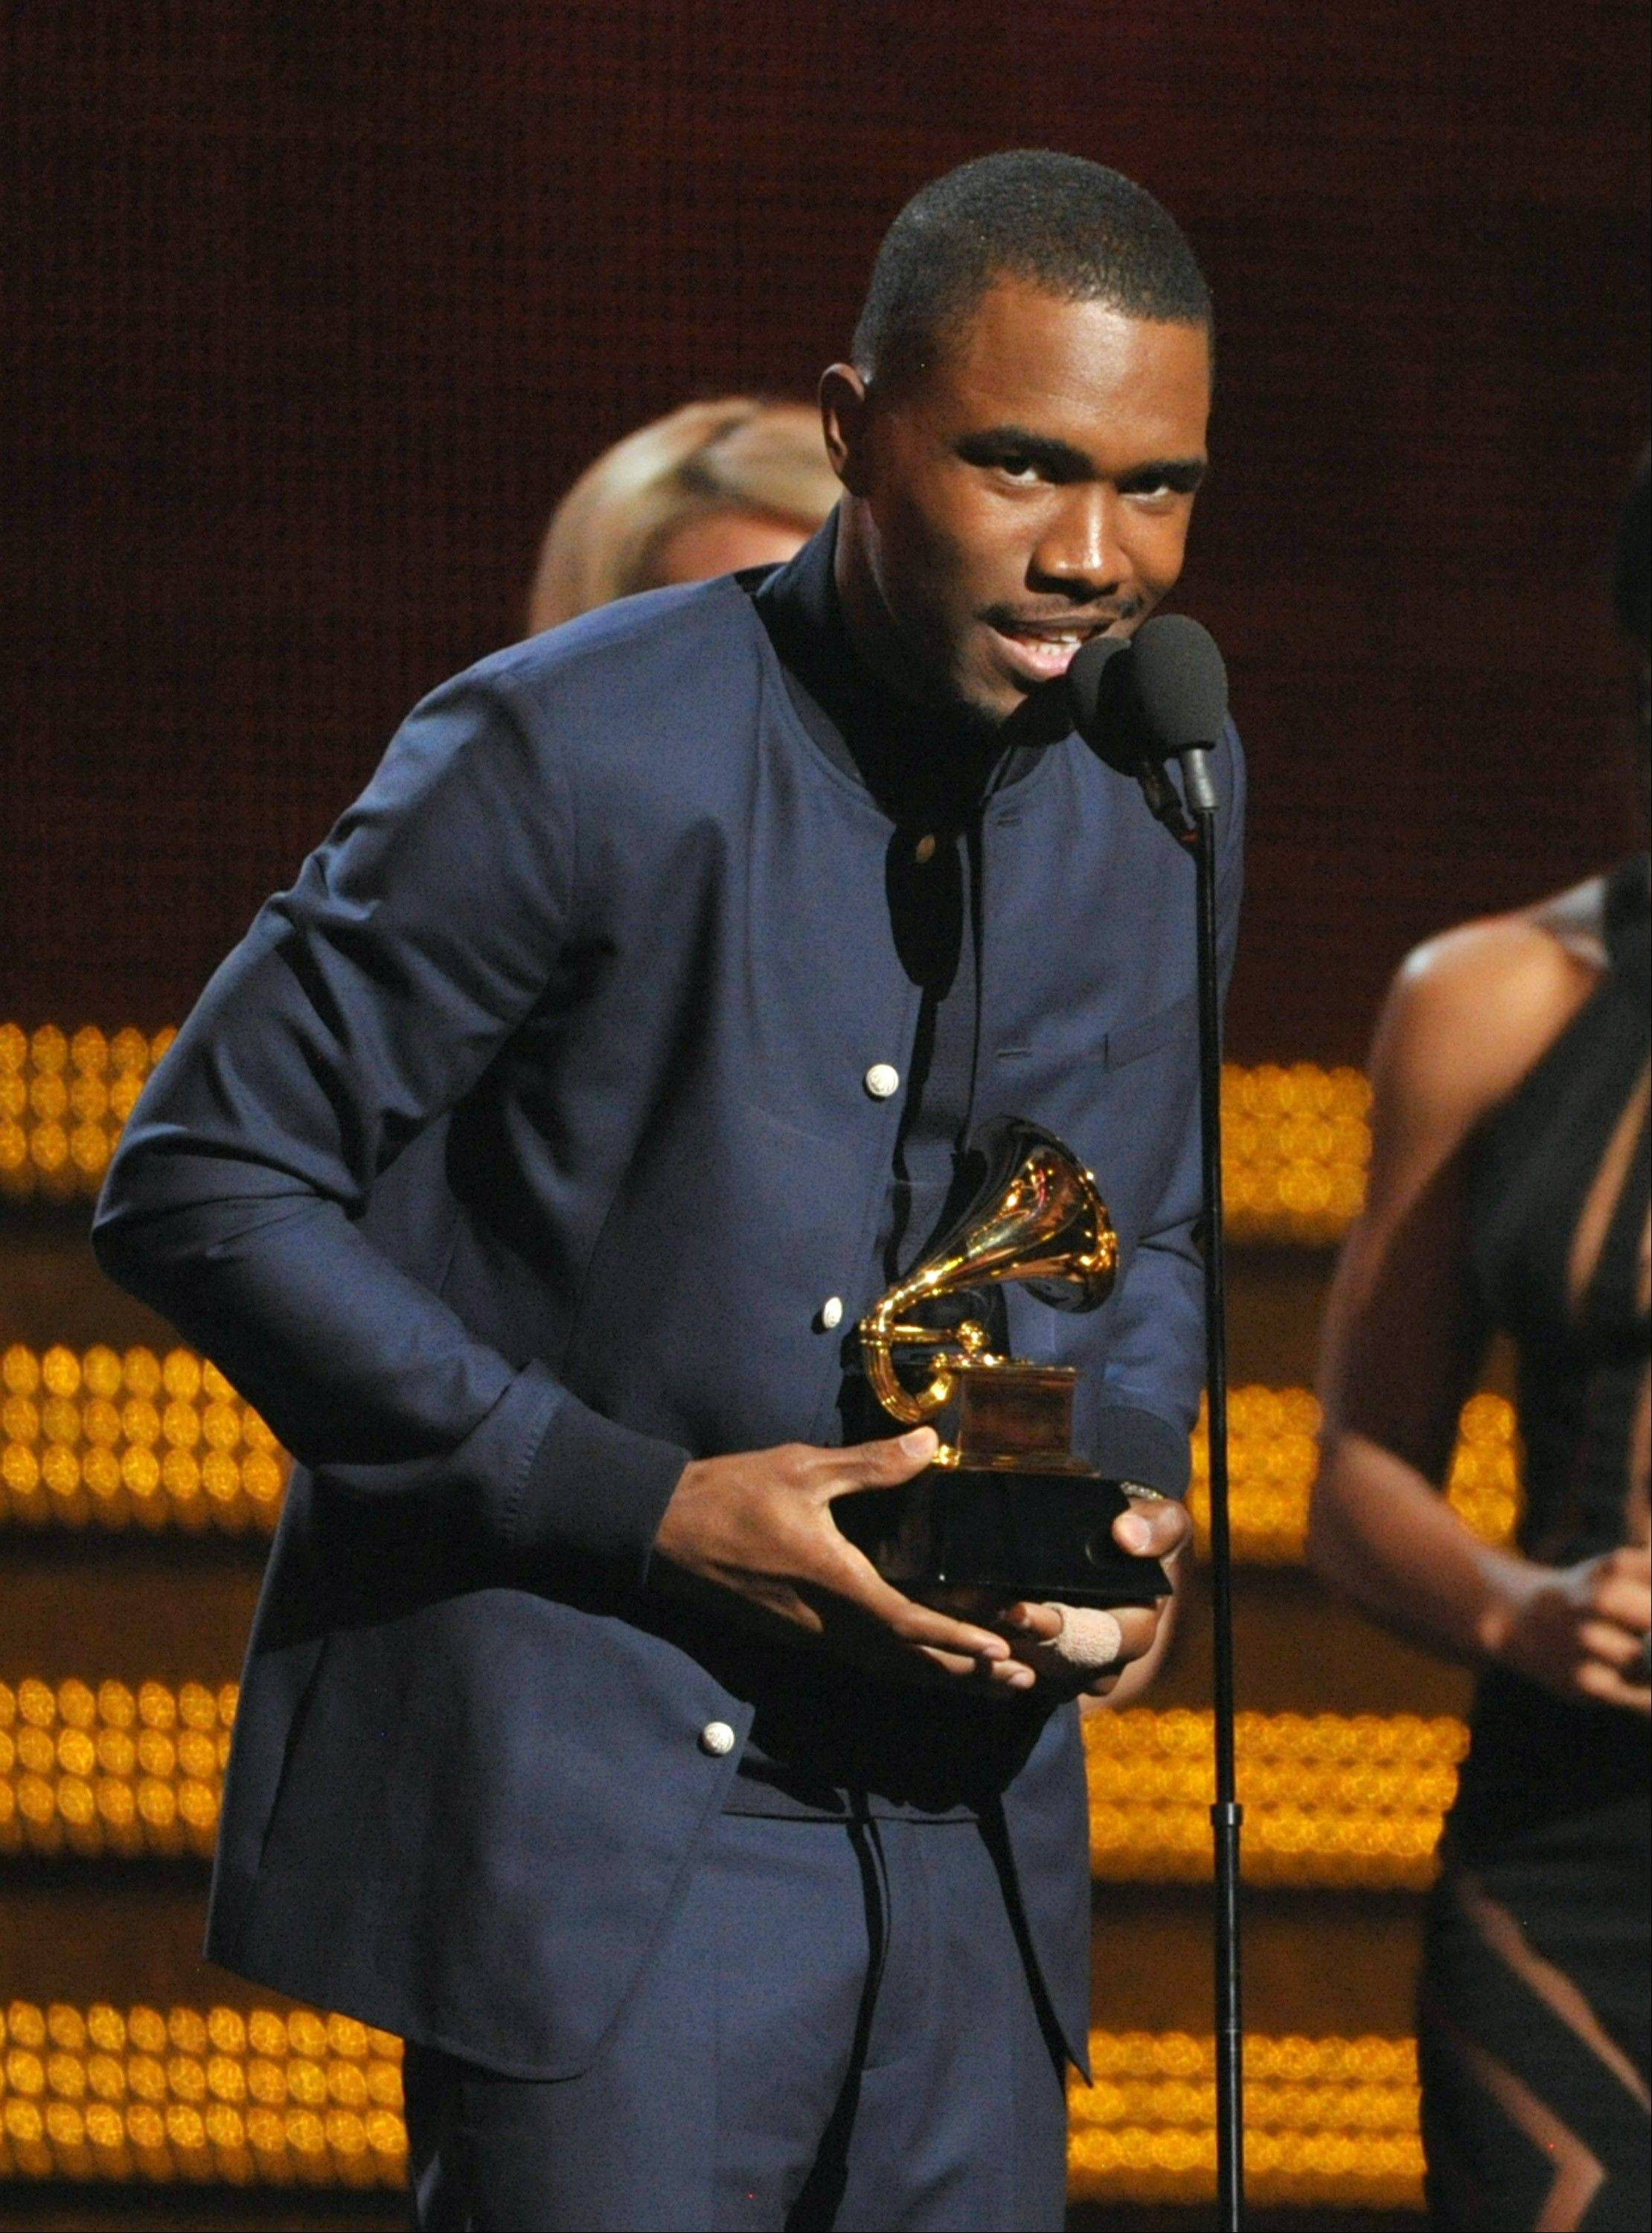 Frank Ocean accepts the award for best urban contemporary album at the 55th annual Grammy Awards on Sunday, Feb. 10, 2013, in Los Angeles.